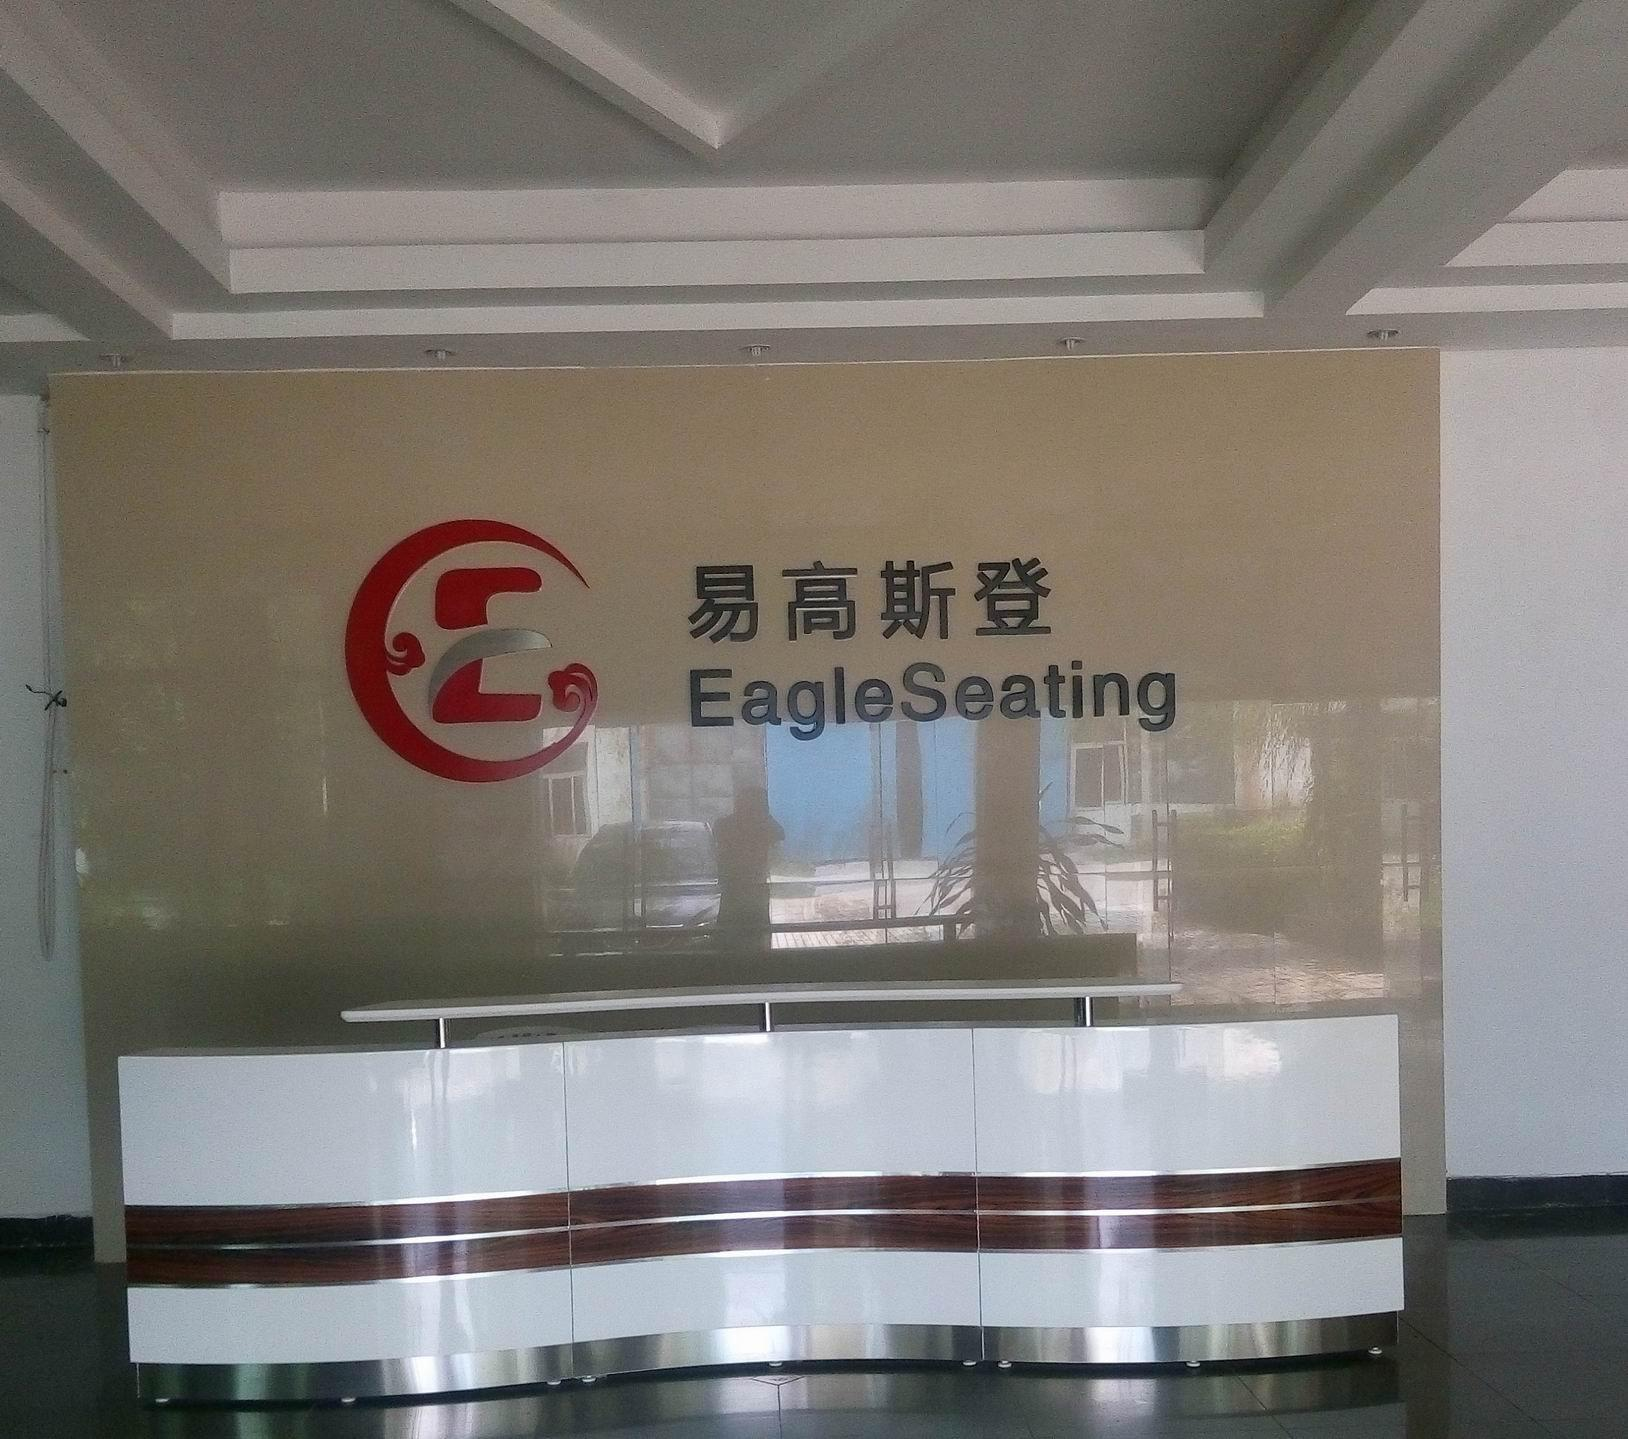 The Reception of EagleSeating